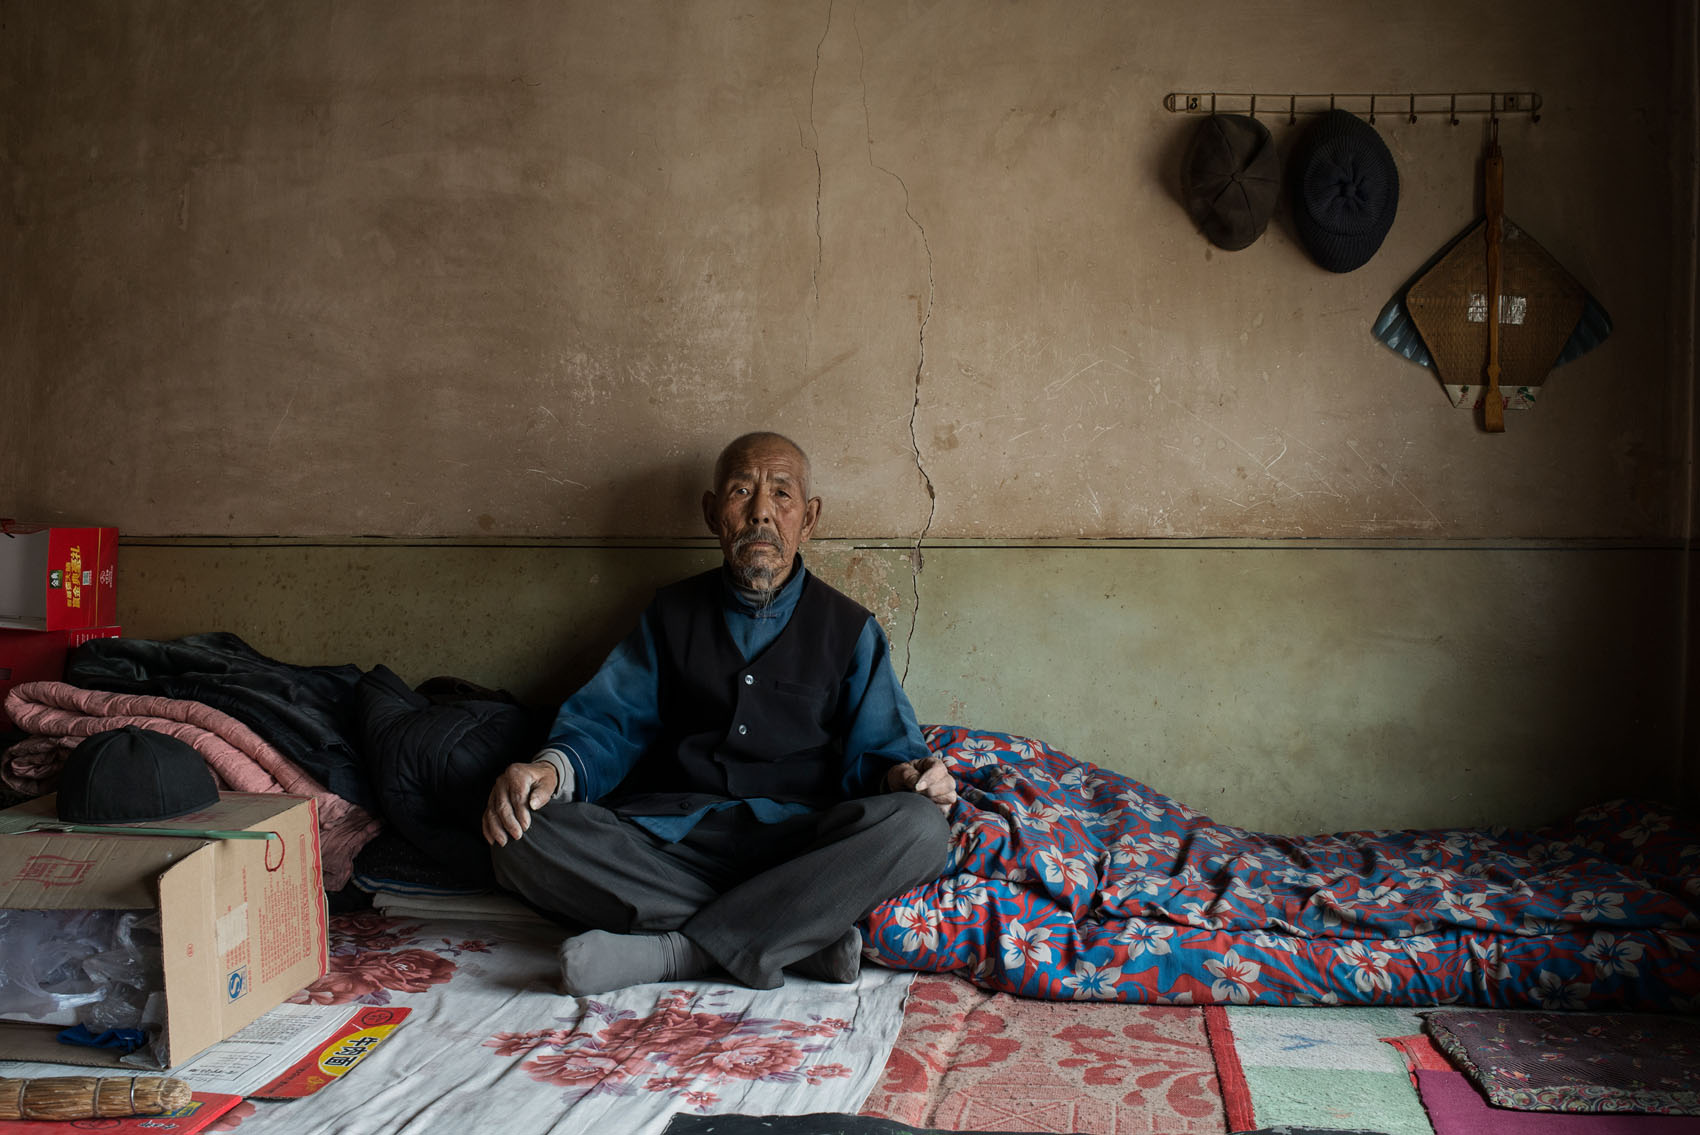 Dashi village  90 years old, Li Shutao Li has 20 grandchildren, most of them migrant workers but they keep foot in the village. In his youth Li was a farm workertravelling on train rooftops following the harvest season from county to county,all the way to the neighbouring province of Shaanxi. This is as far as he has ever travelled.  During the great hunger of the 60s he urged his sons to leave the village andgo and beg for food in Shaanxi. He told them to pretend to be mute so they could more easily get on trains.